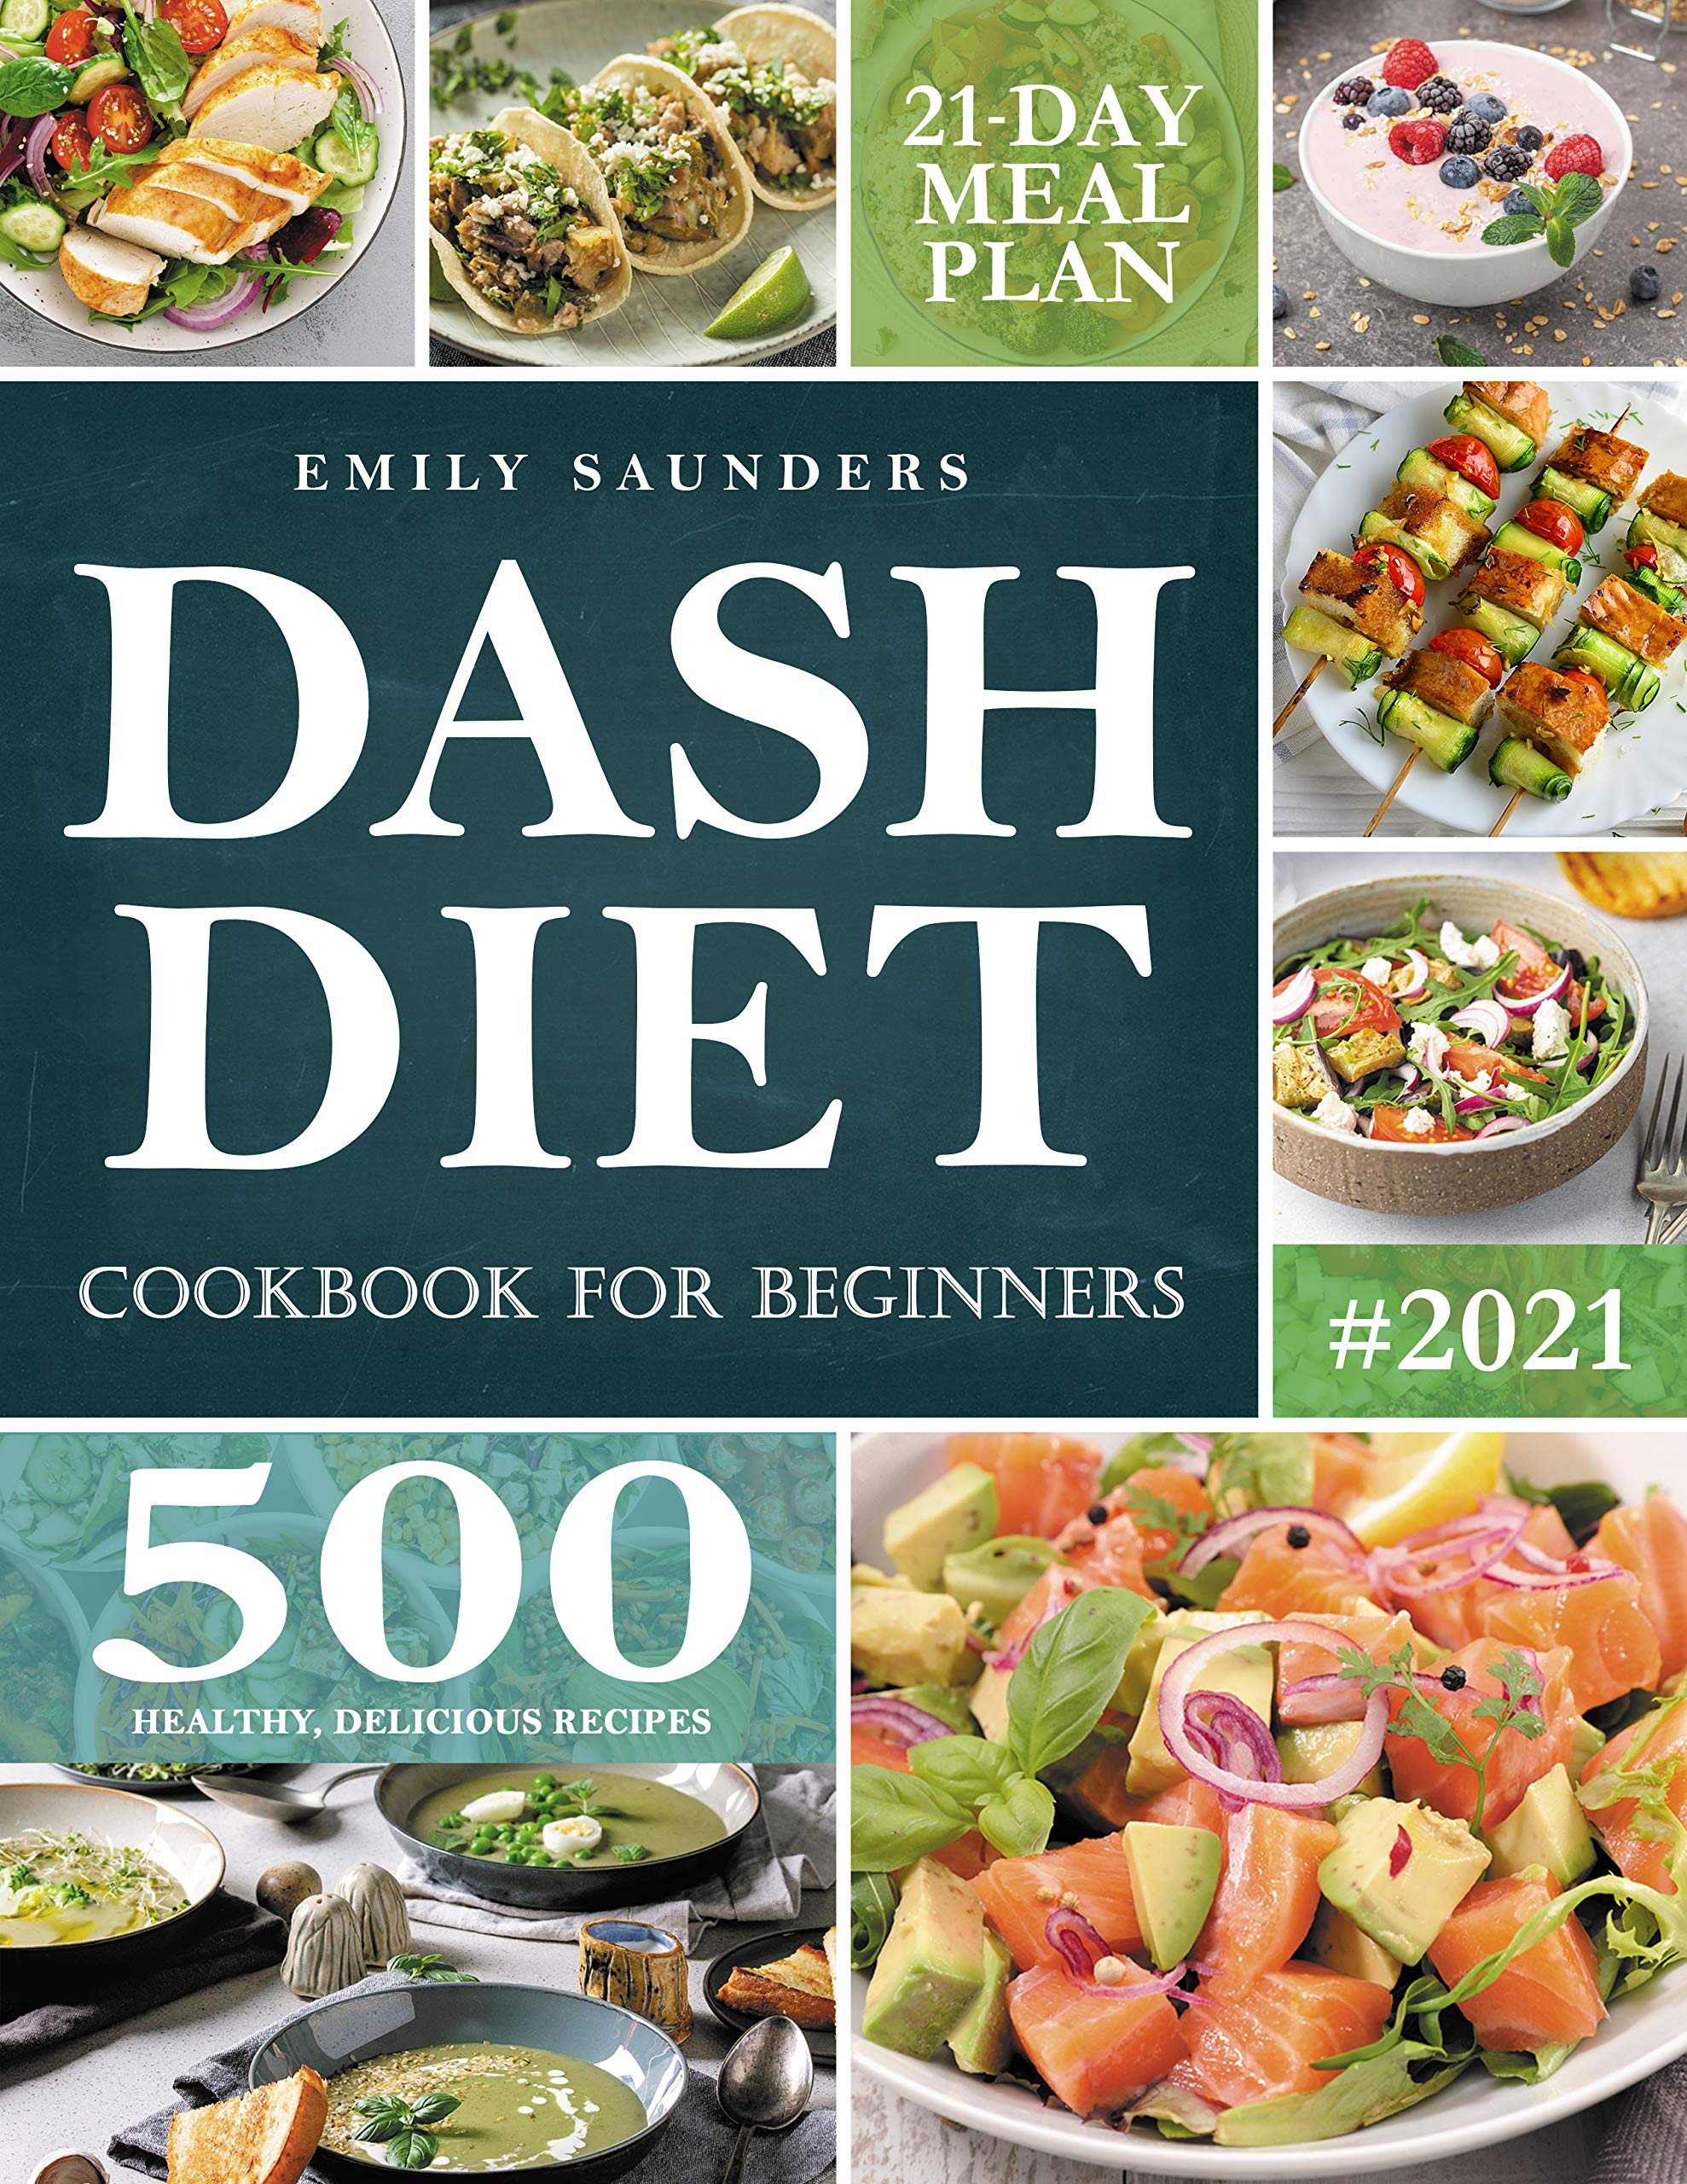 Dash Diet Cookbook for Beginners: 500 Delicious, Healthy Recipes to Lose Weight, Lower Blood Pressure, and Improve Your Health. 21 Day Meal Plan Included.